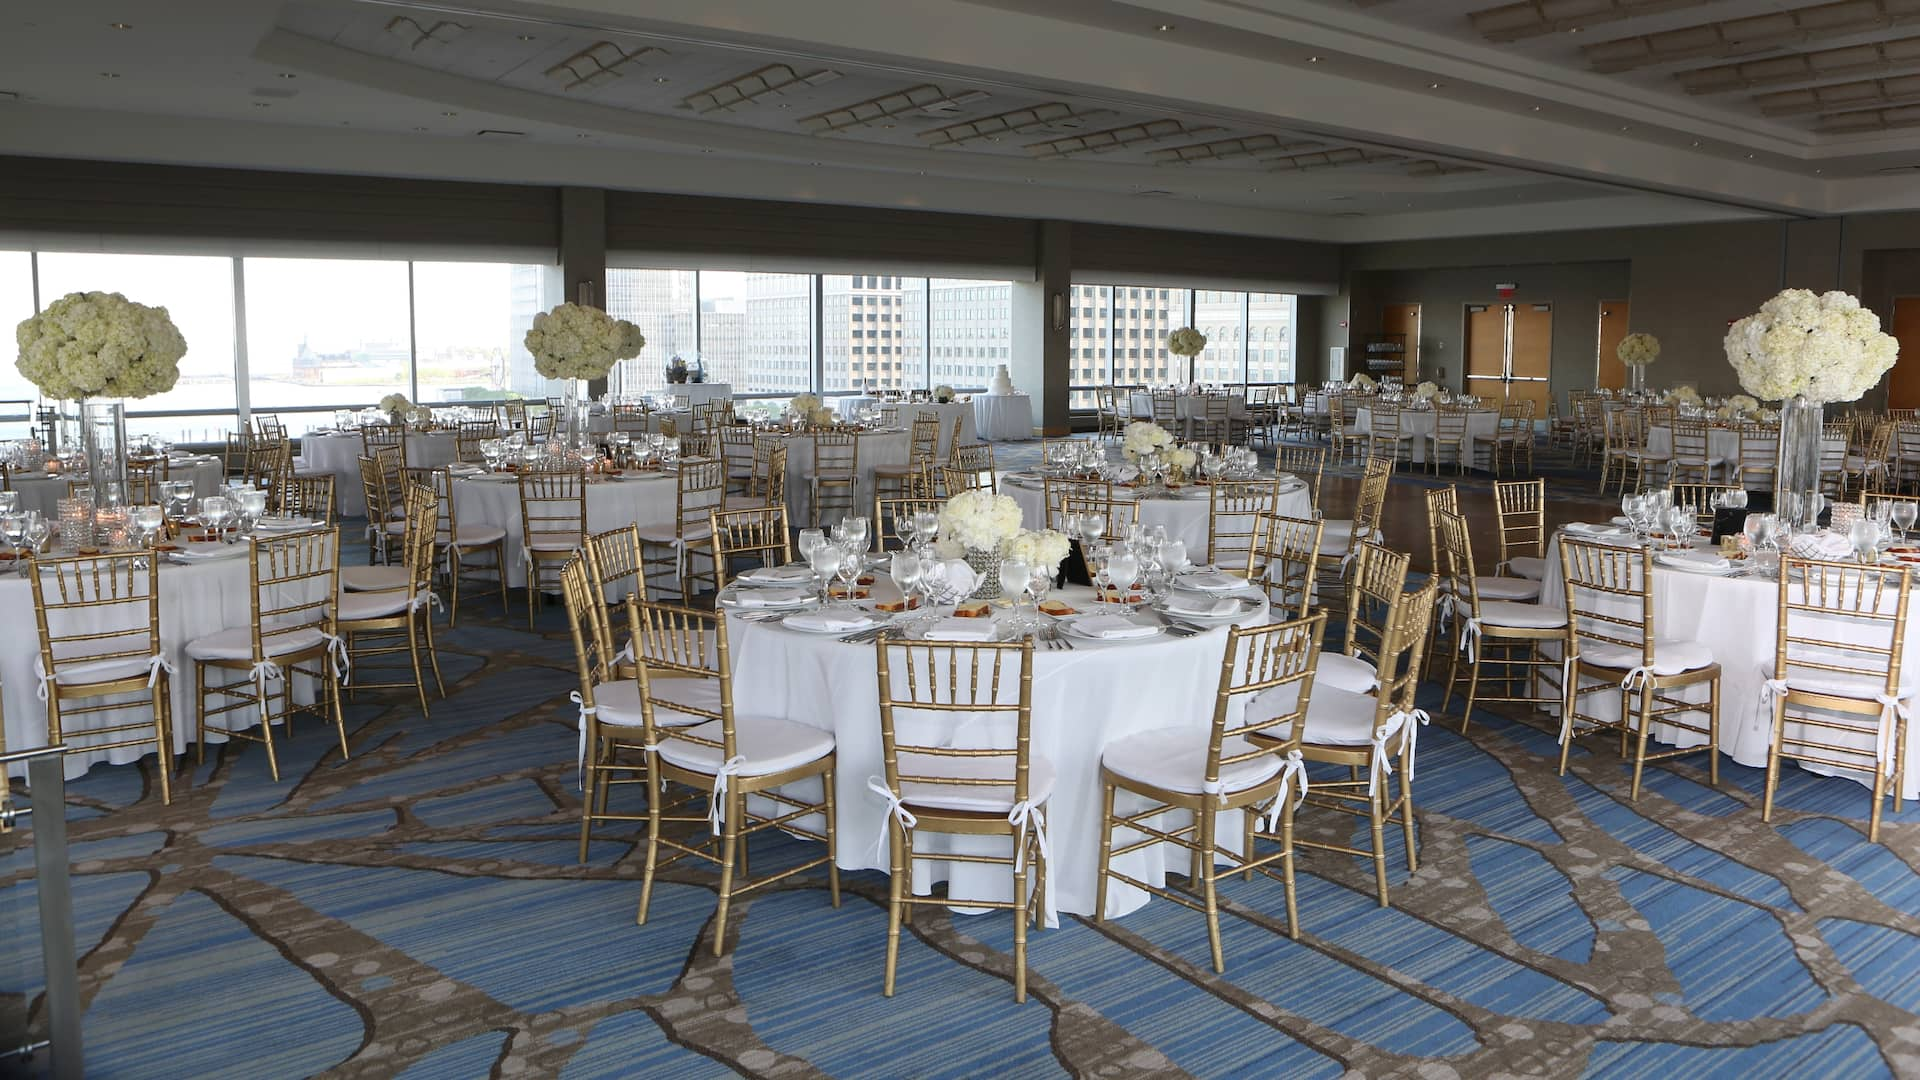 Elegant wedding venue with a view of the Hudson River